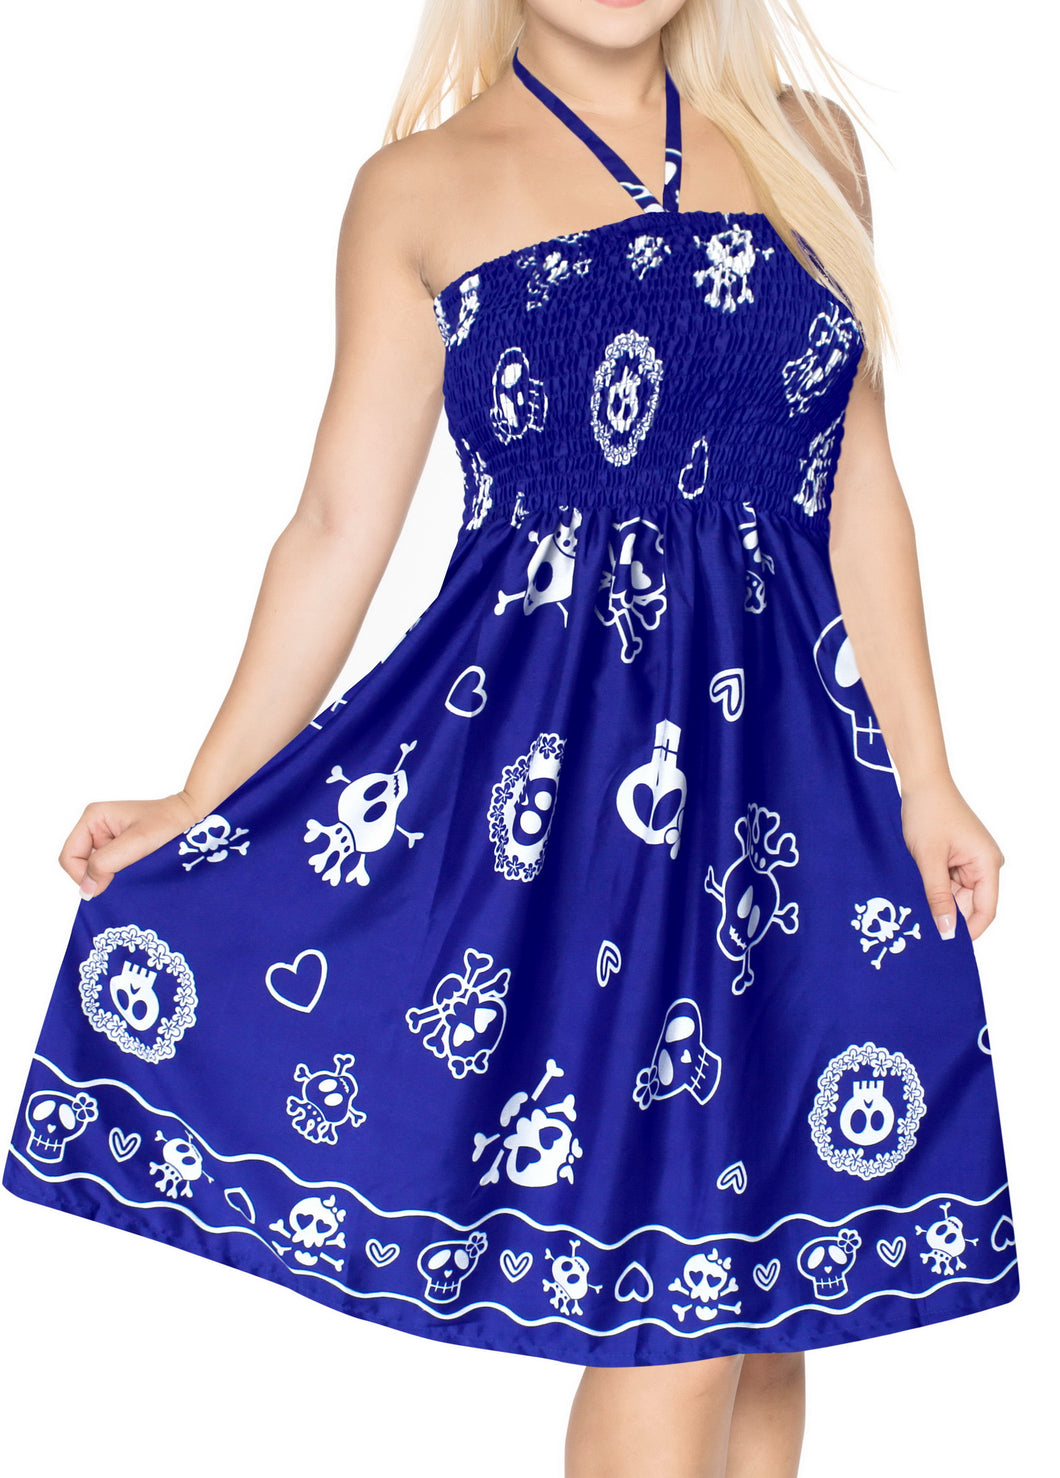 la-leela-womens-one-size-beach-dress-tube-dress-Blue-one-size-Skull-Printed